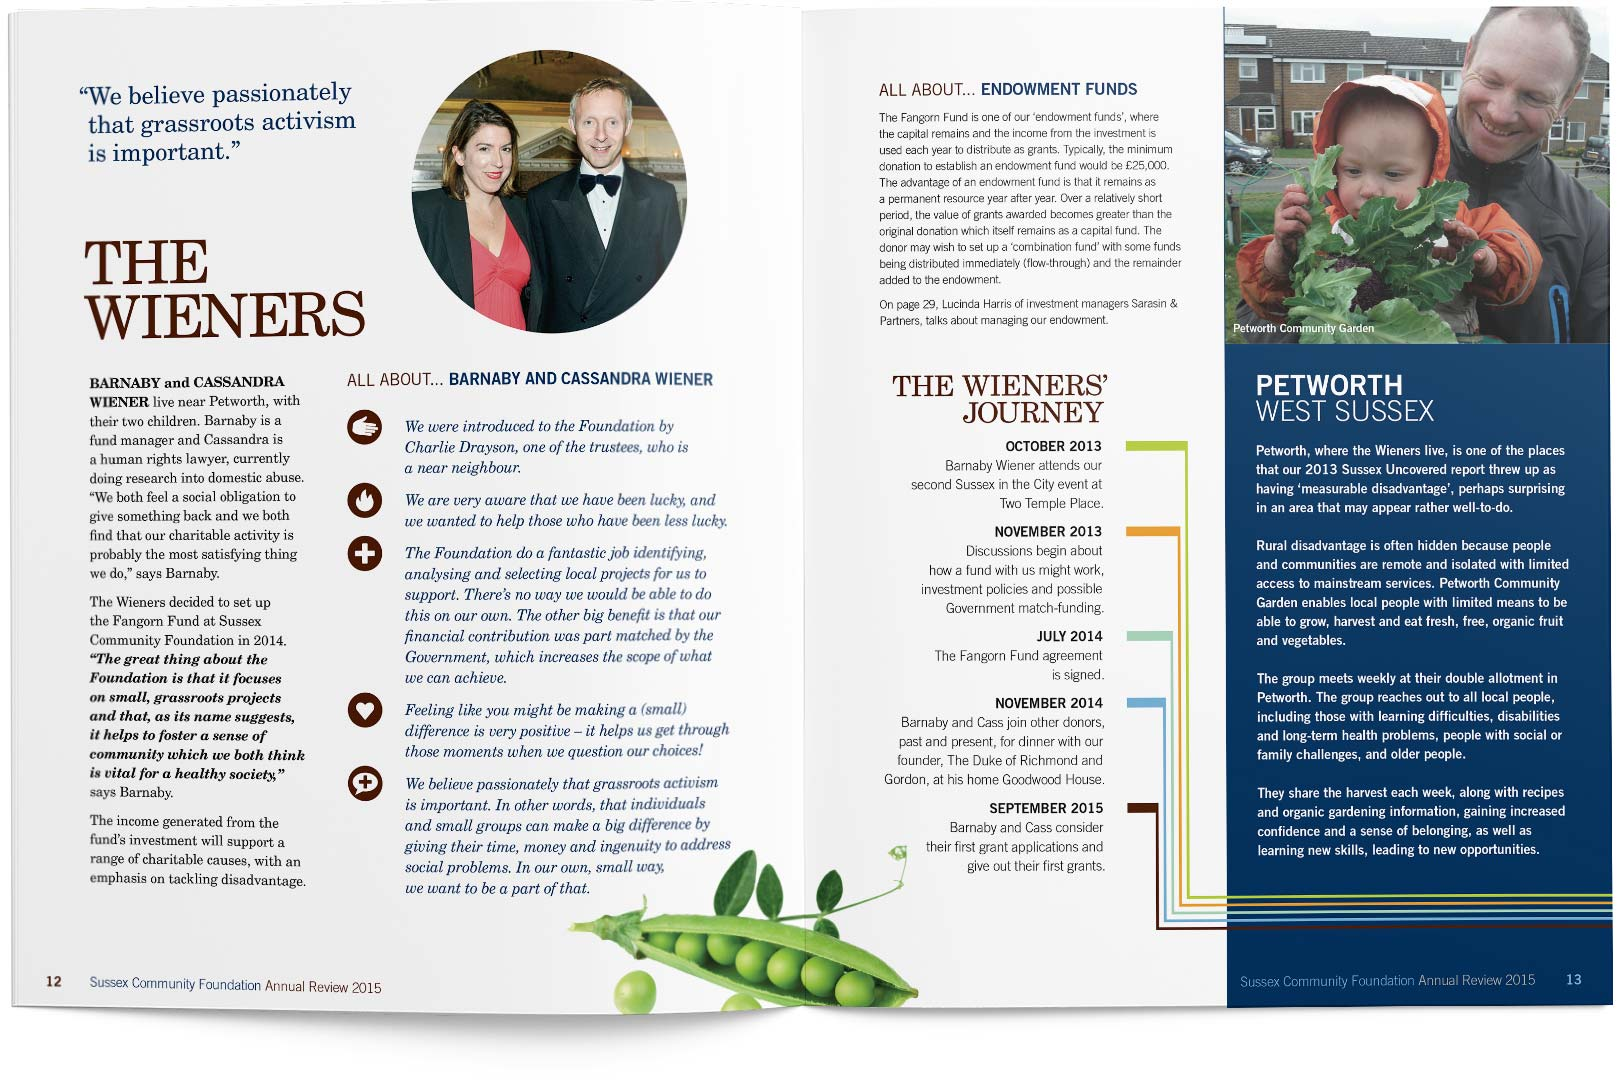 Annual review 2015 pages 12-13